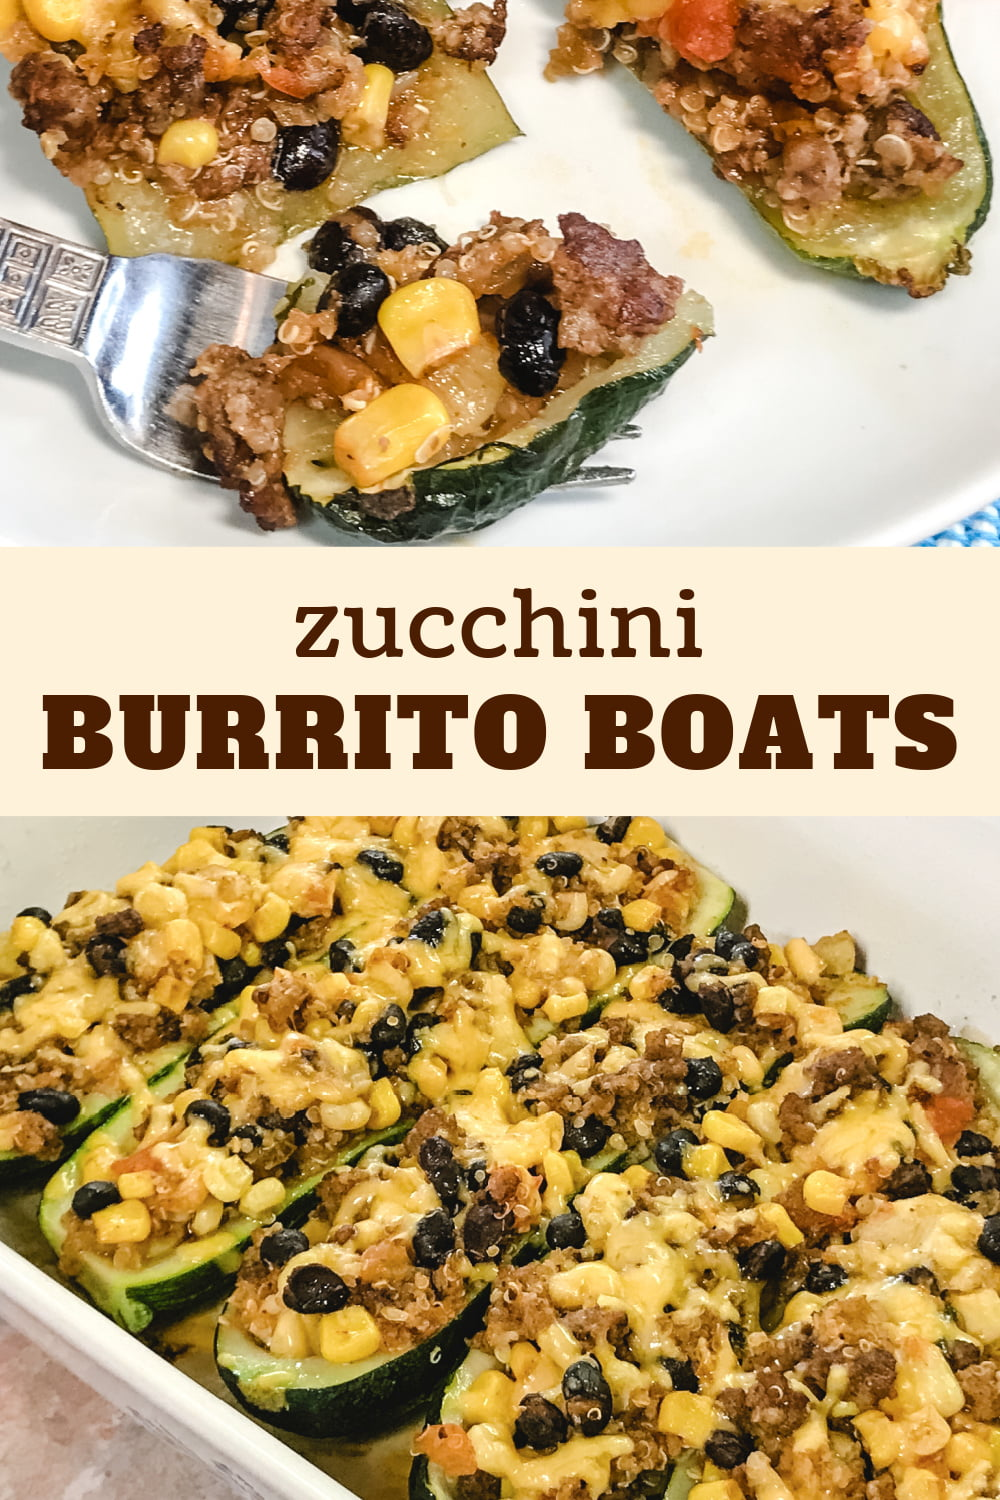 Zucchini boats with black bean filling.